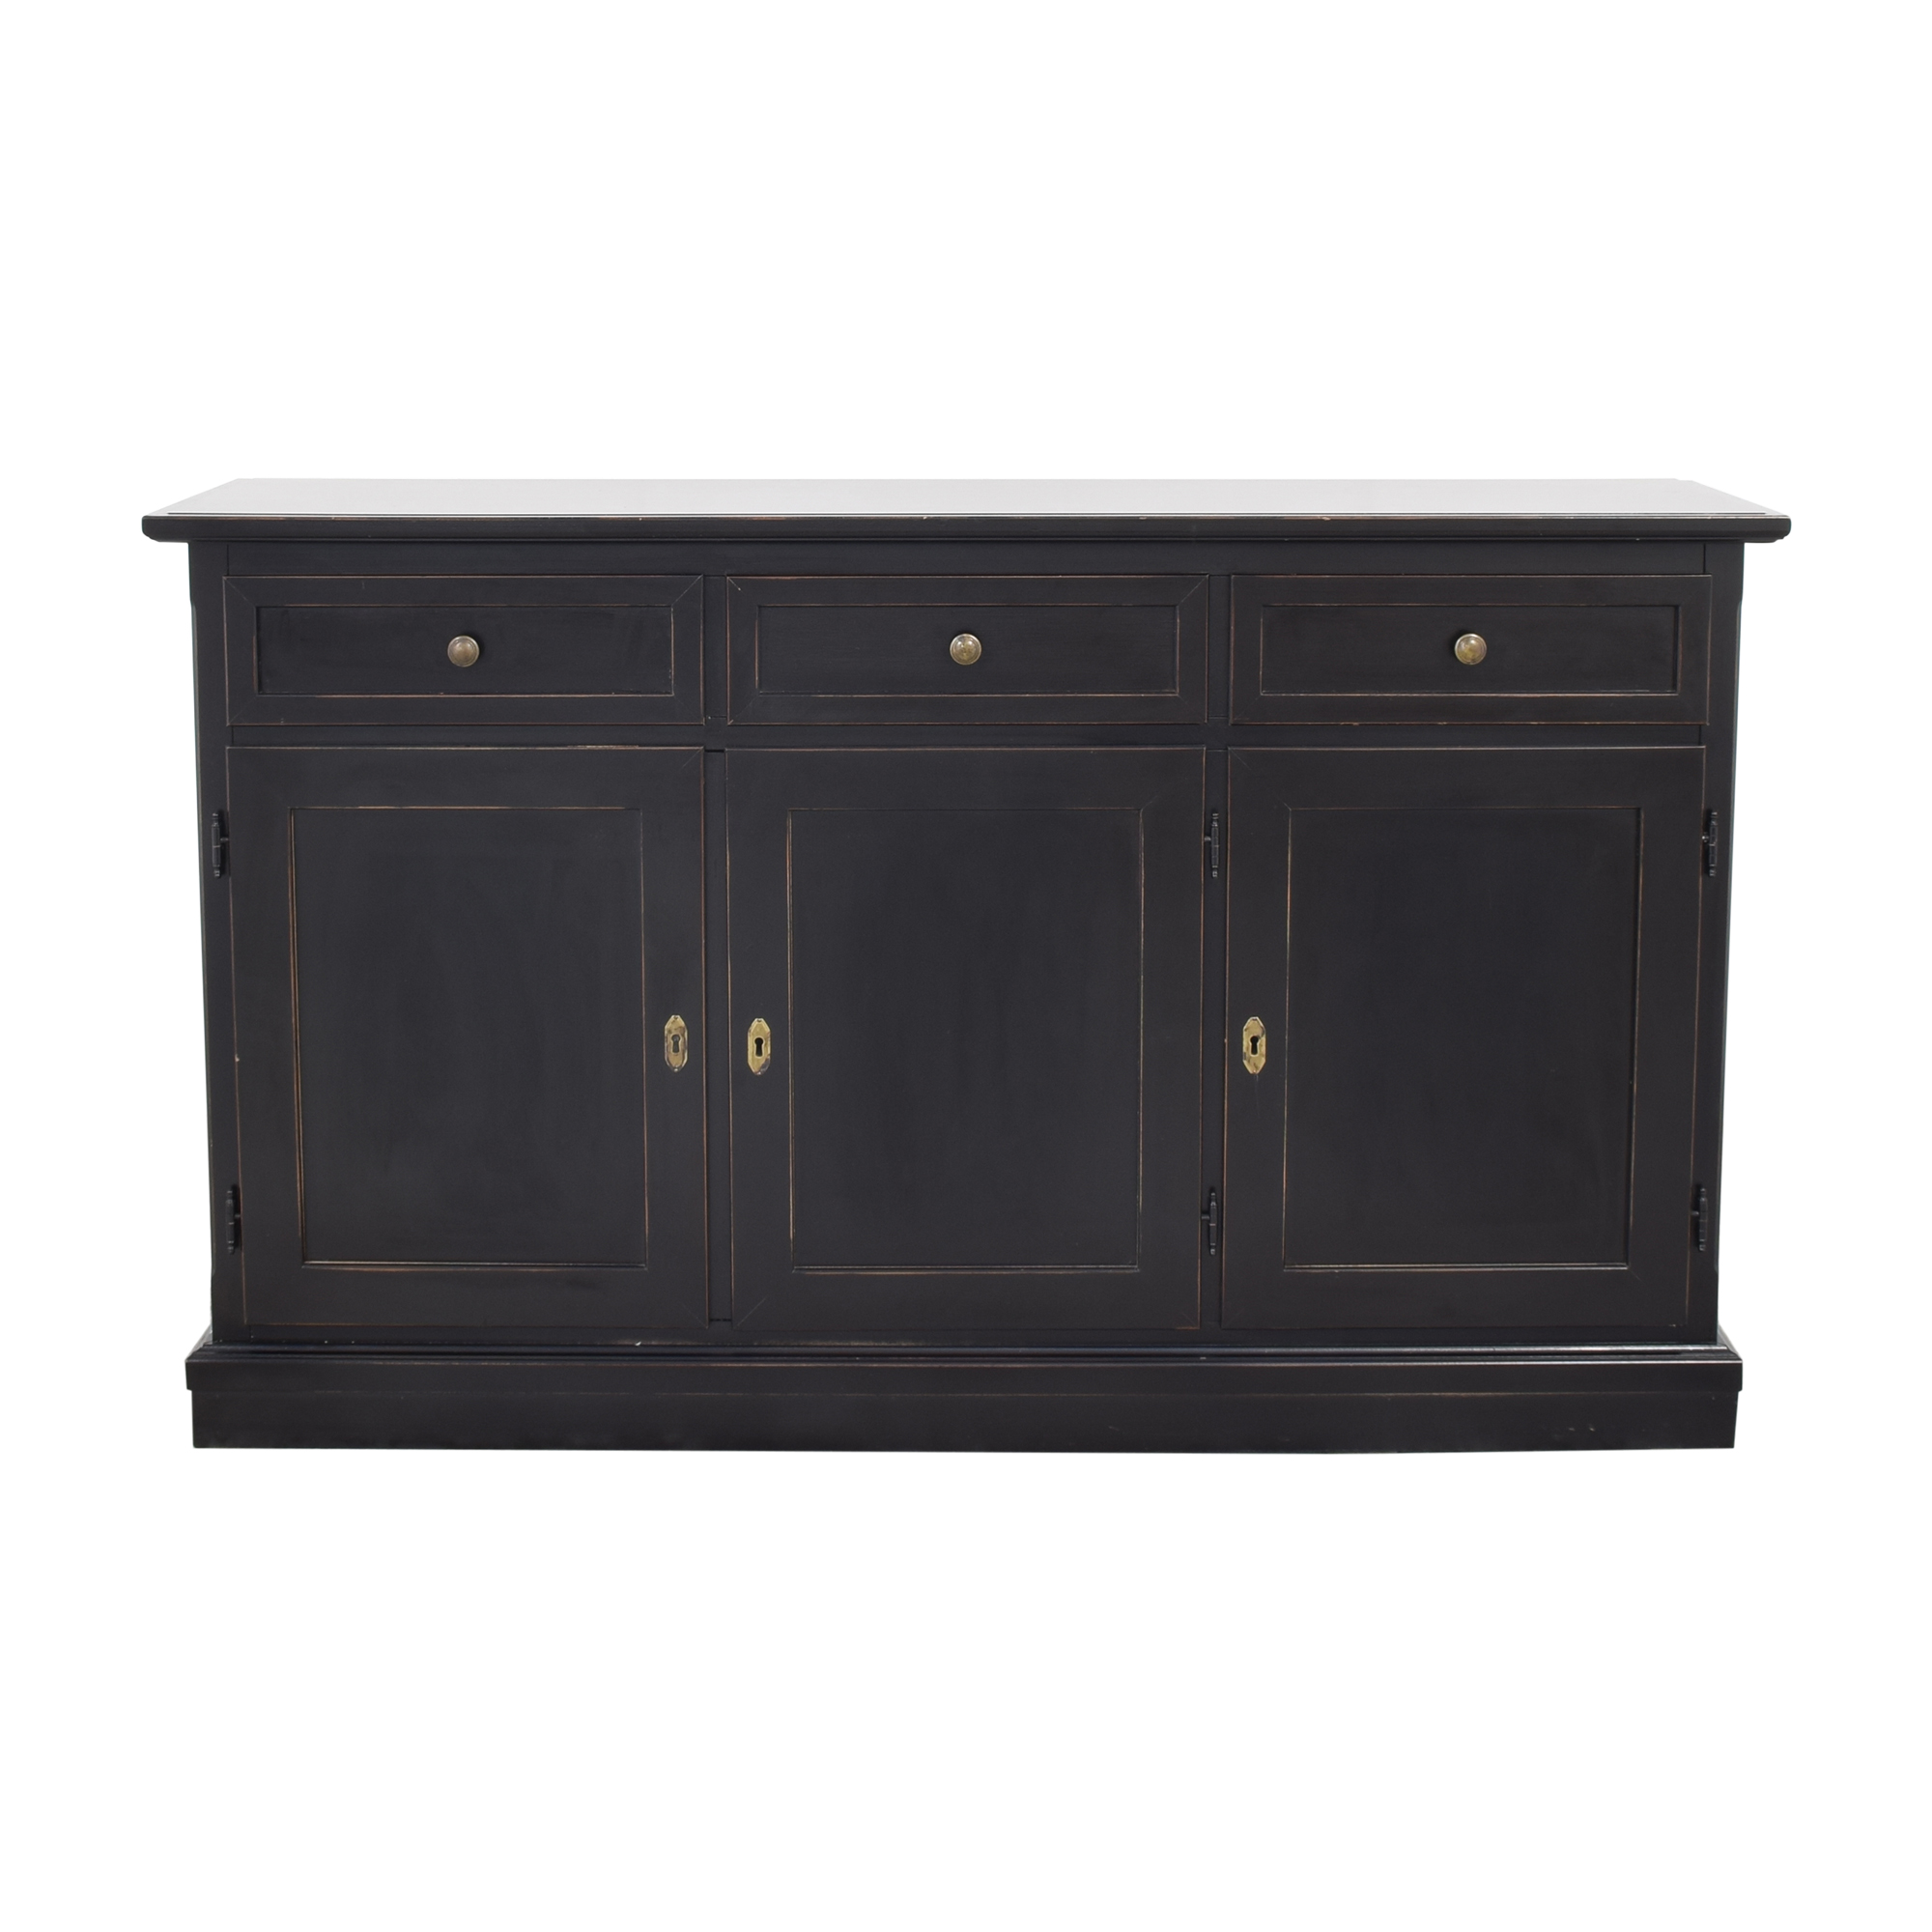 buy Crate & Barrel Pranzo II Sideboard Crate & Barrel